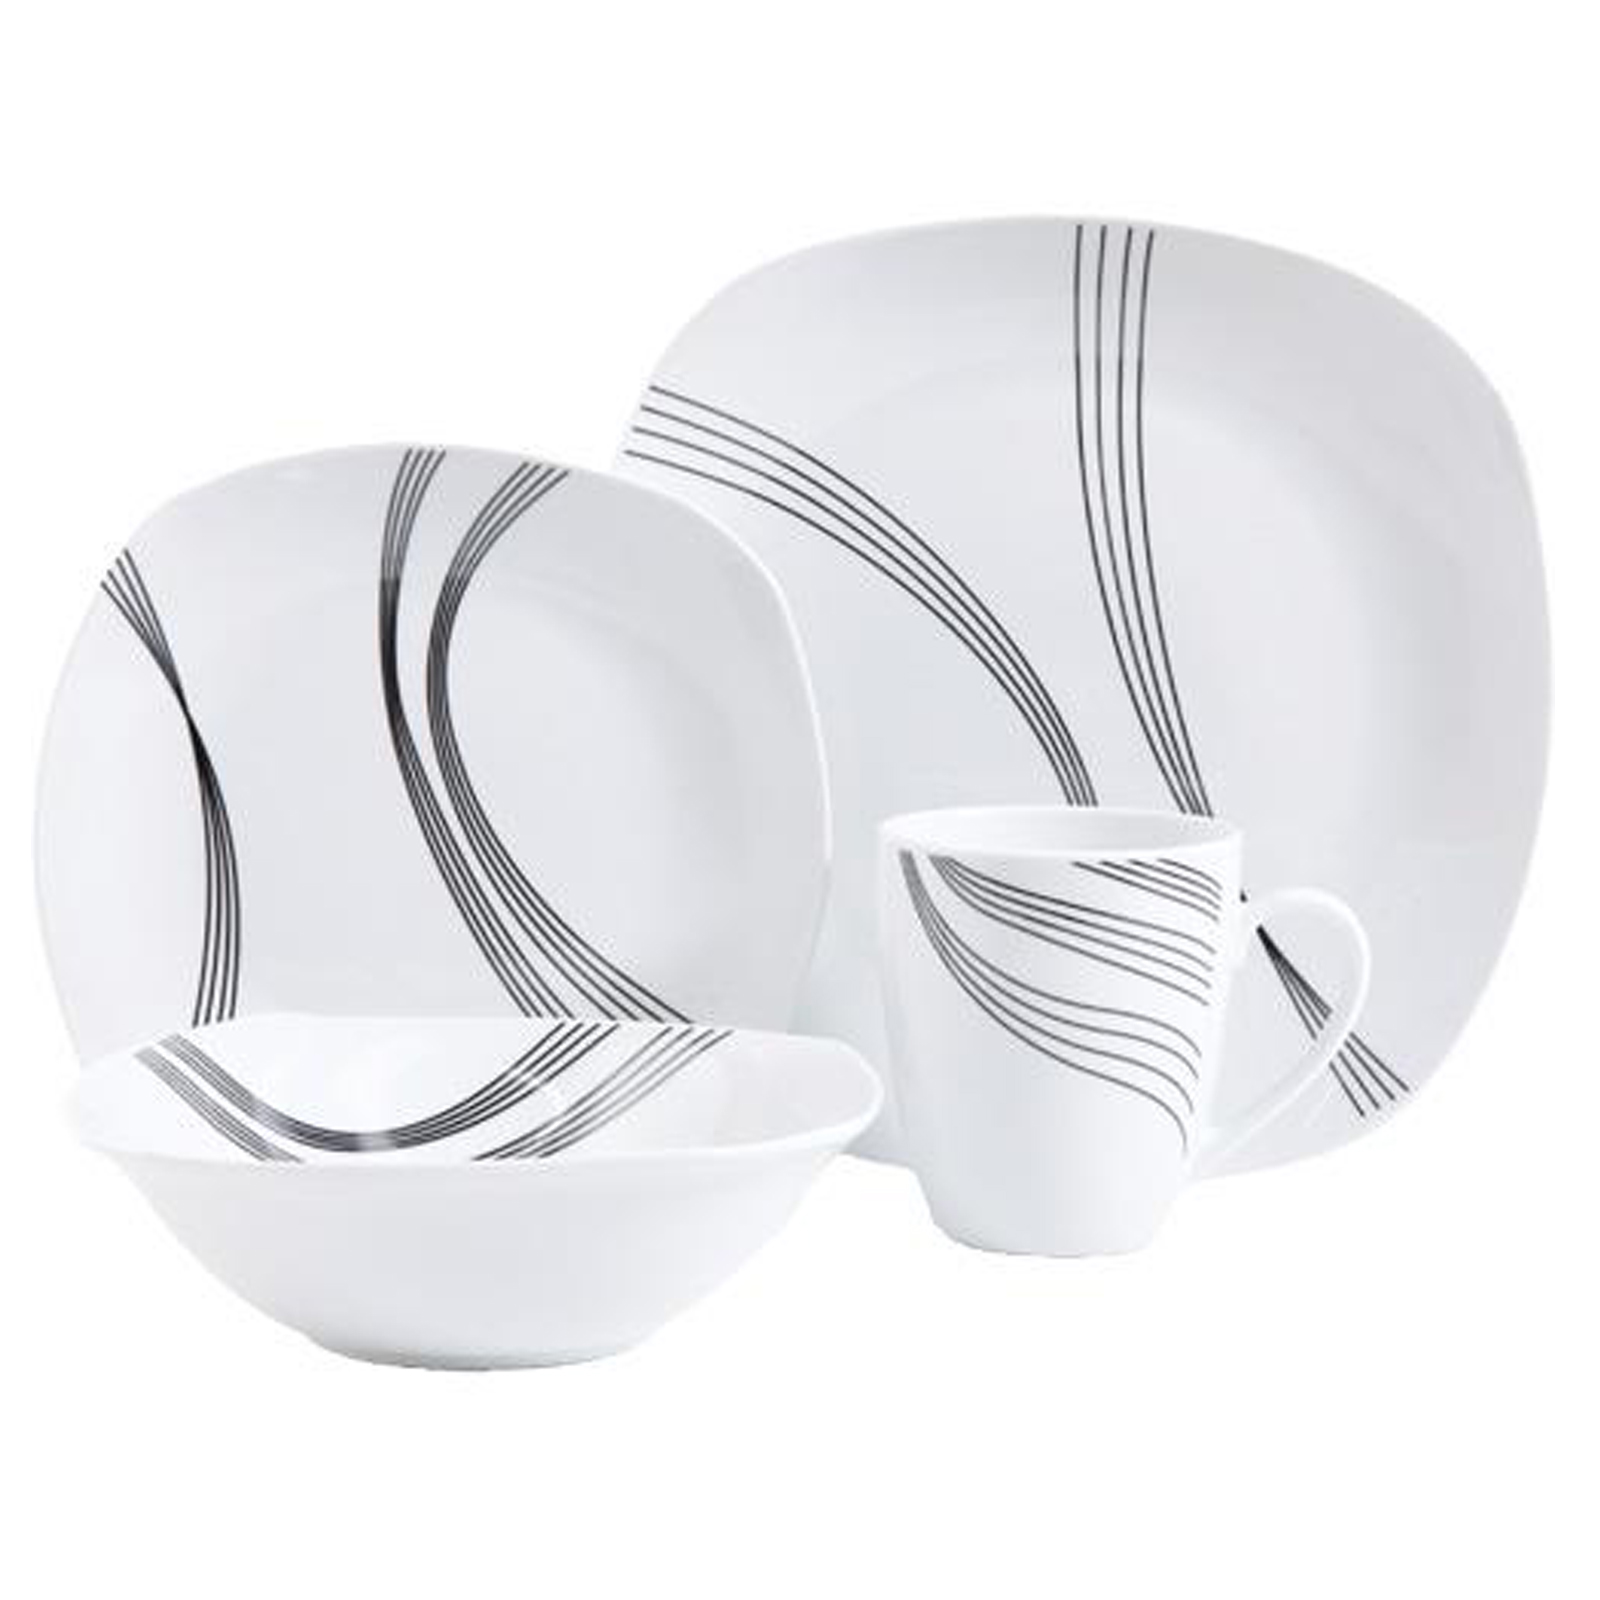 Gibson Curvation 16 Piece Soft Square Dinnerware Set in White  sc 1 st  Walmart & Gibson Curvation 16 Piece Soft Square Dinnerware Set in White ...